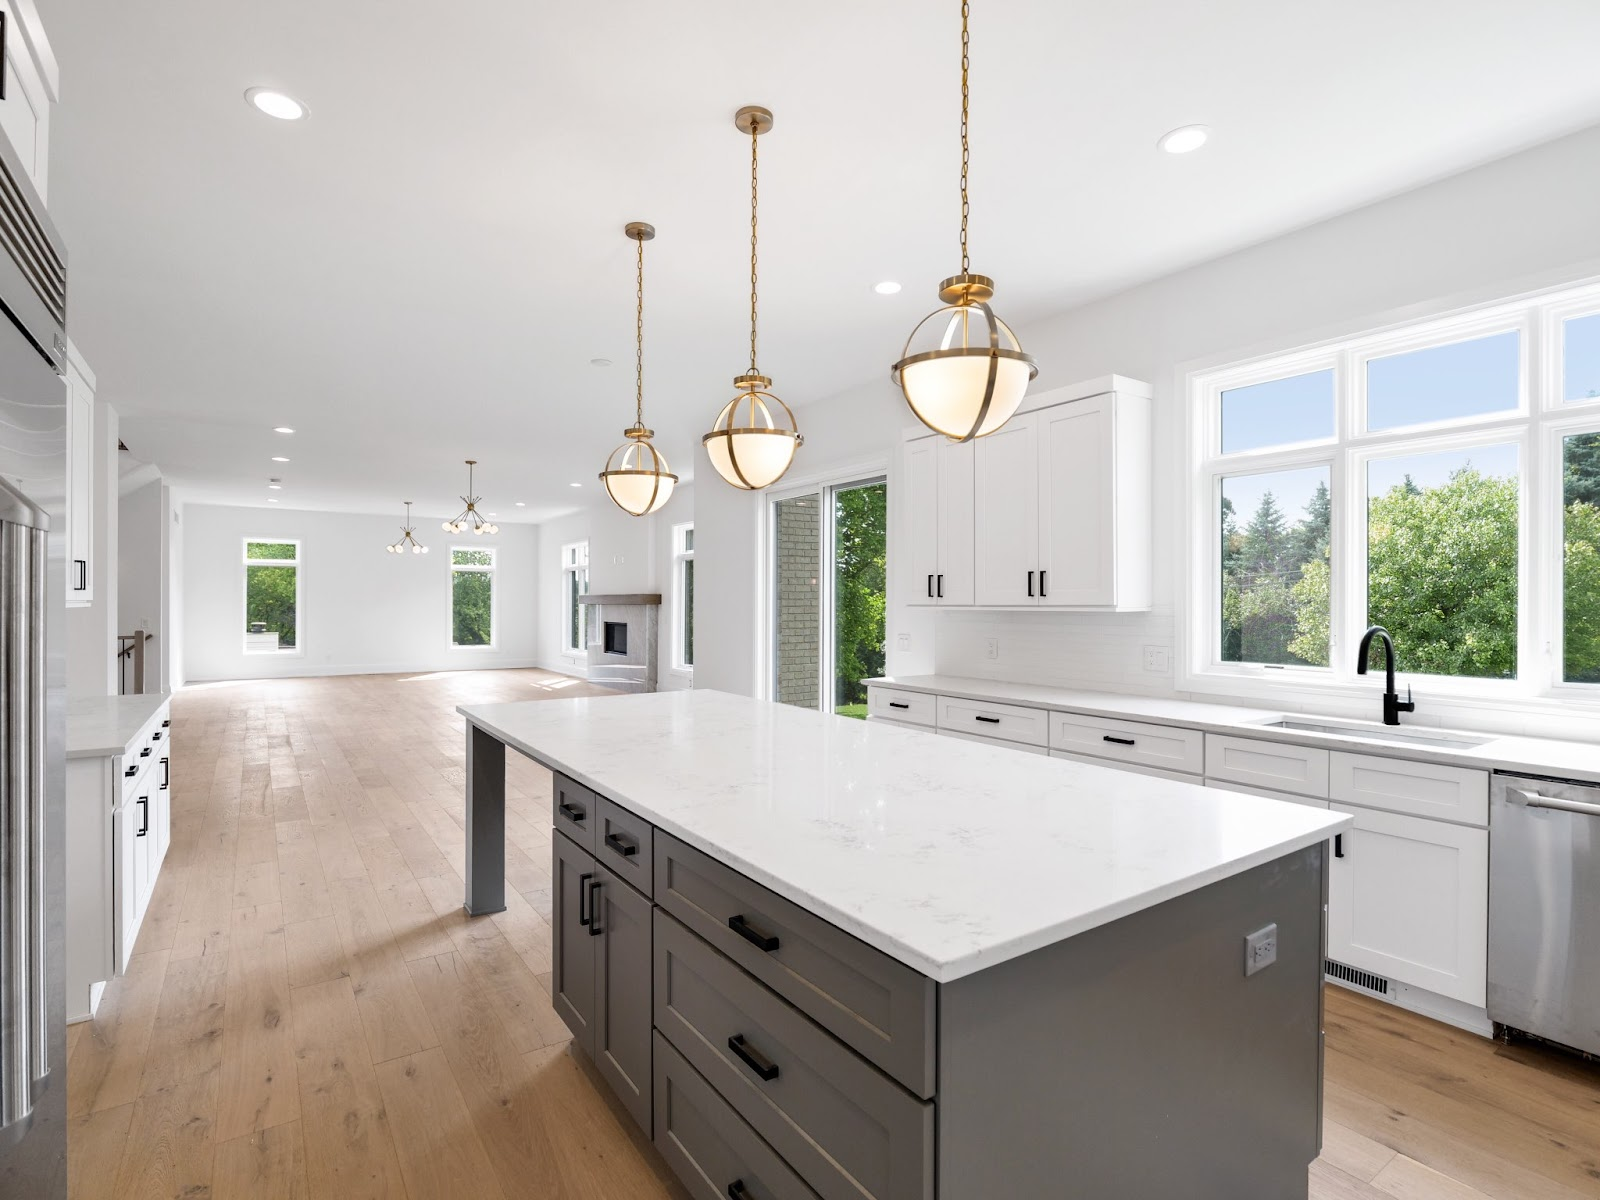 large kitchen with white shaker cabinets and grey shaker cabinets on the island, as well as white countertops. grey shaker cabinets are one of the best kitchen trends for 2020